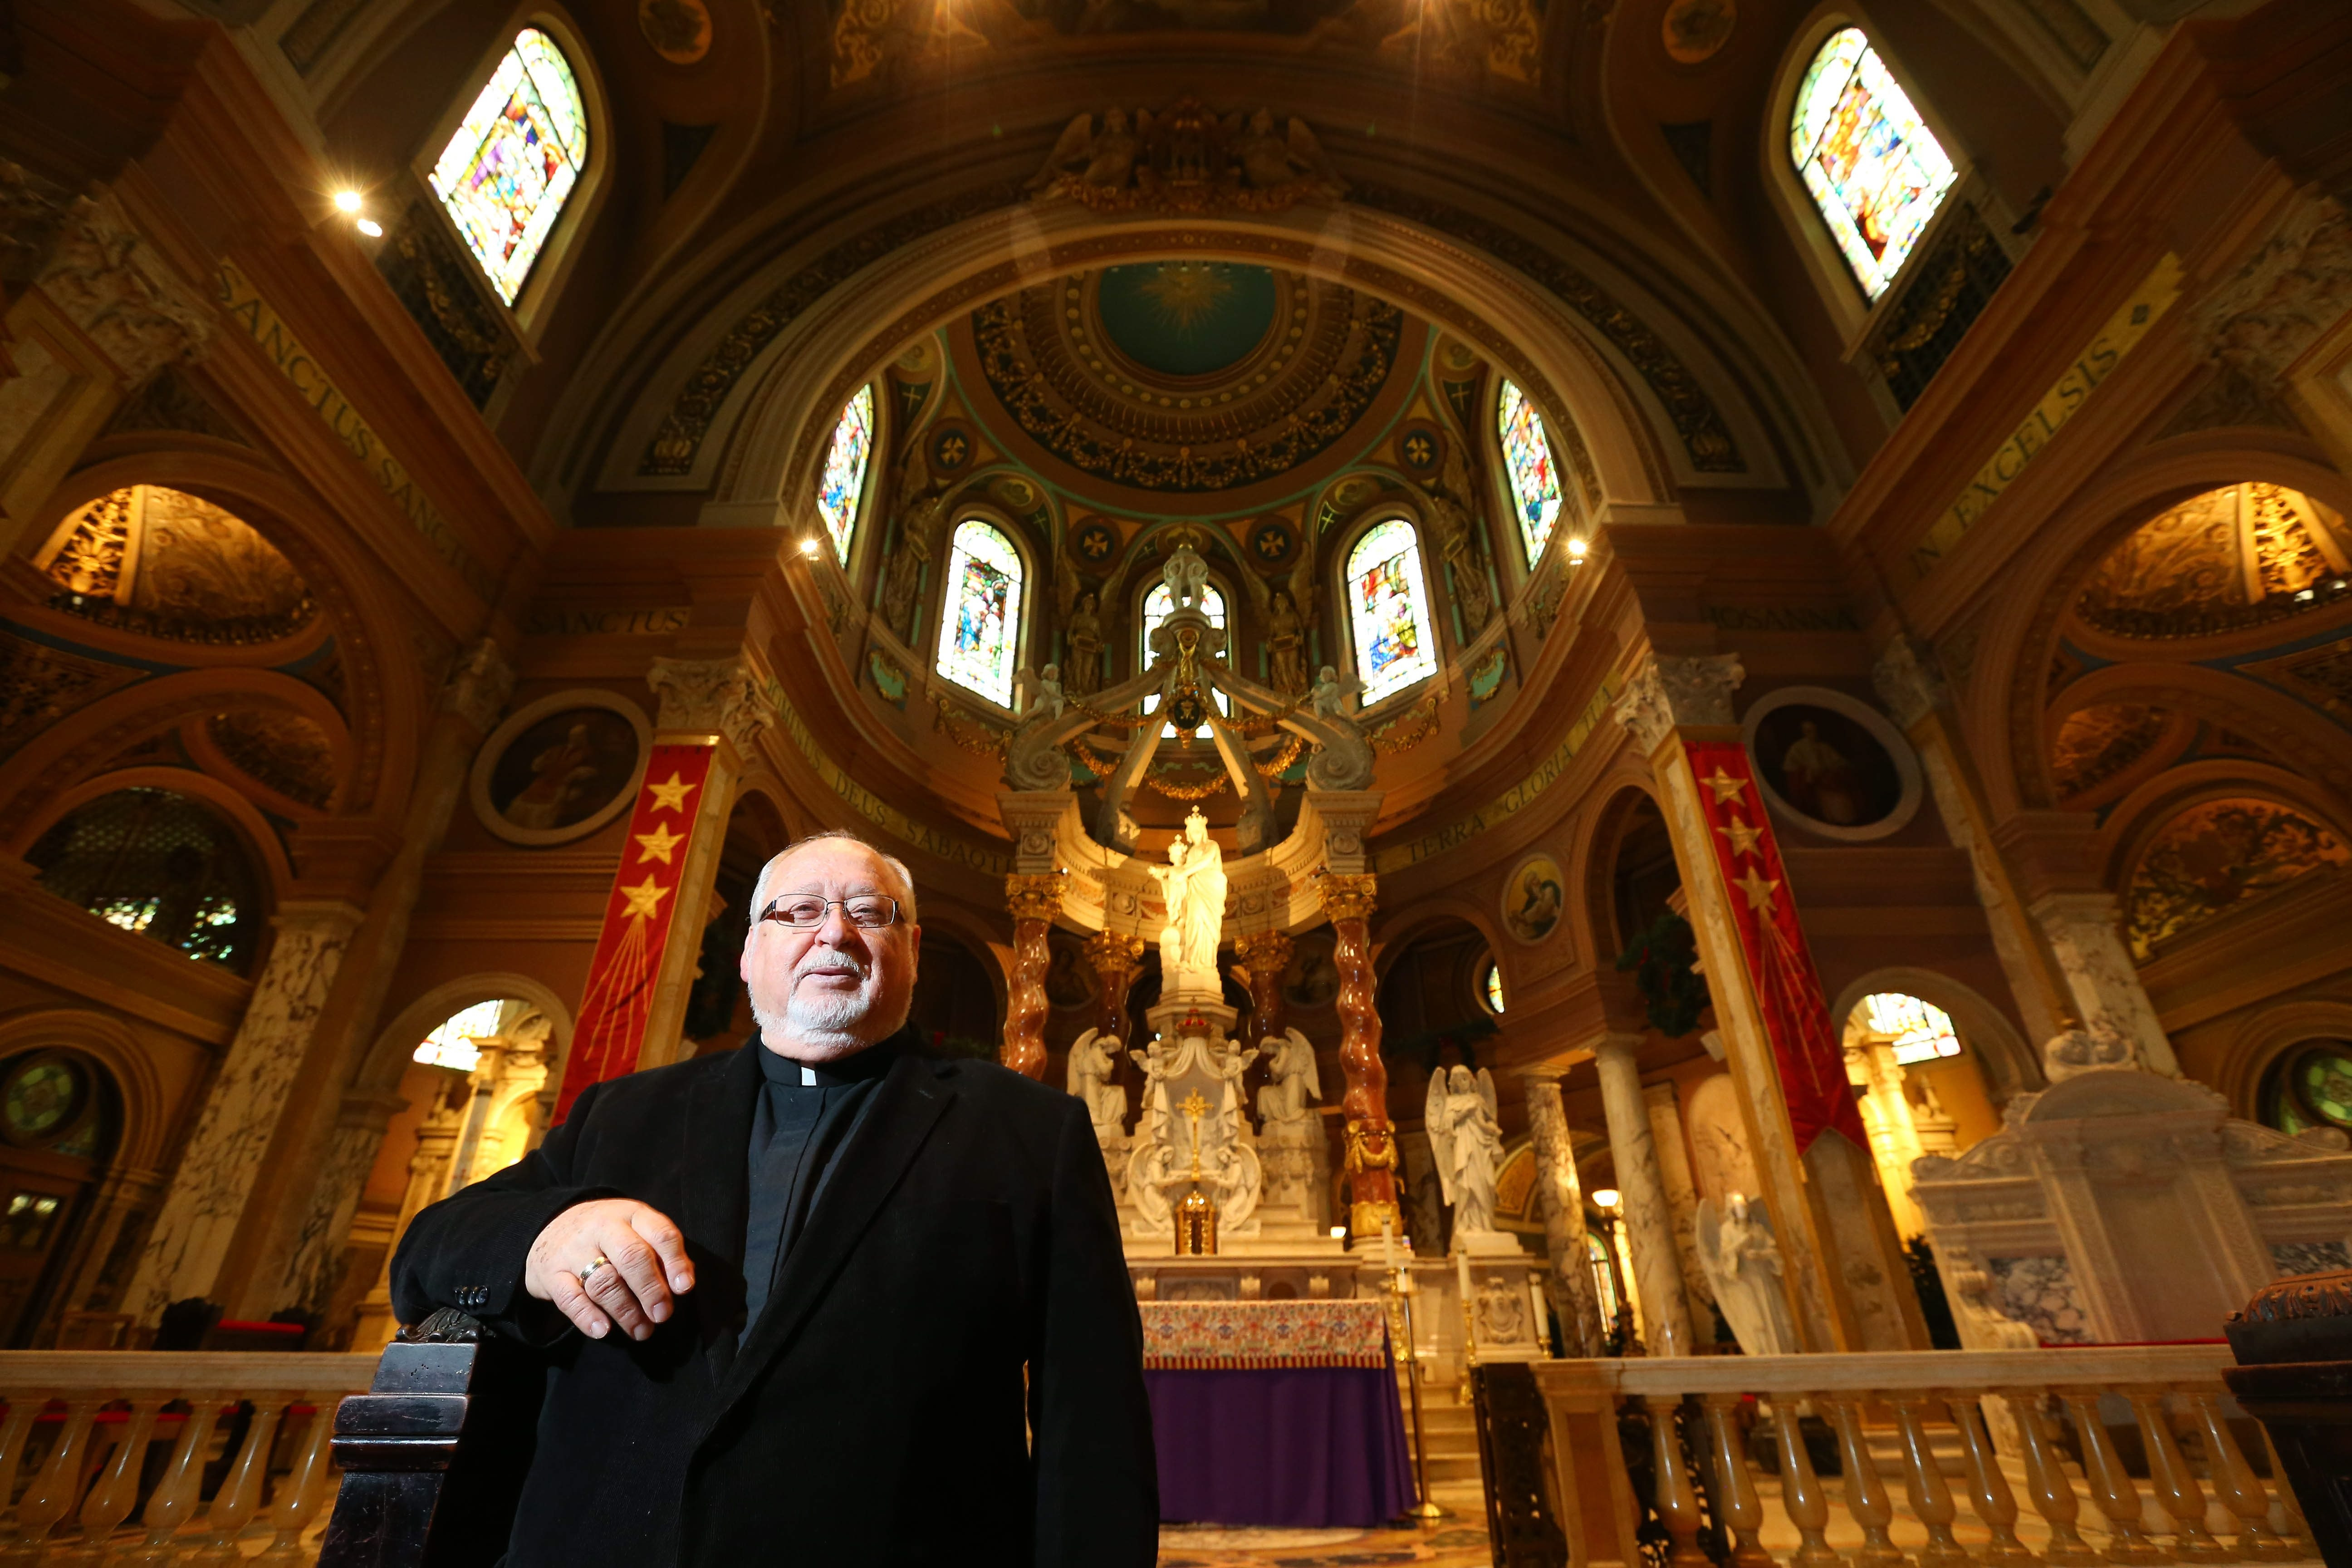 Clockwise from top: Pastor Paul J.E. Burkard shows off the newly renovated Our Lady of Victory Basilica in Lackawanna on Tuesday; One of the 16 stained-glass windows featuring adoring angels that was restored; The scaffolding at the church, which was removed just in time for Christmas celebrations.